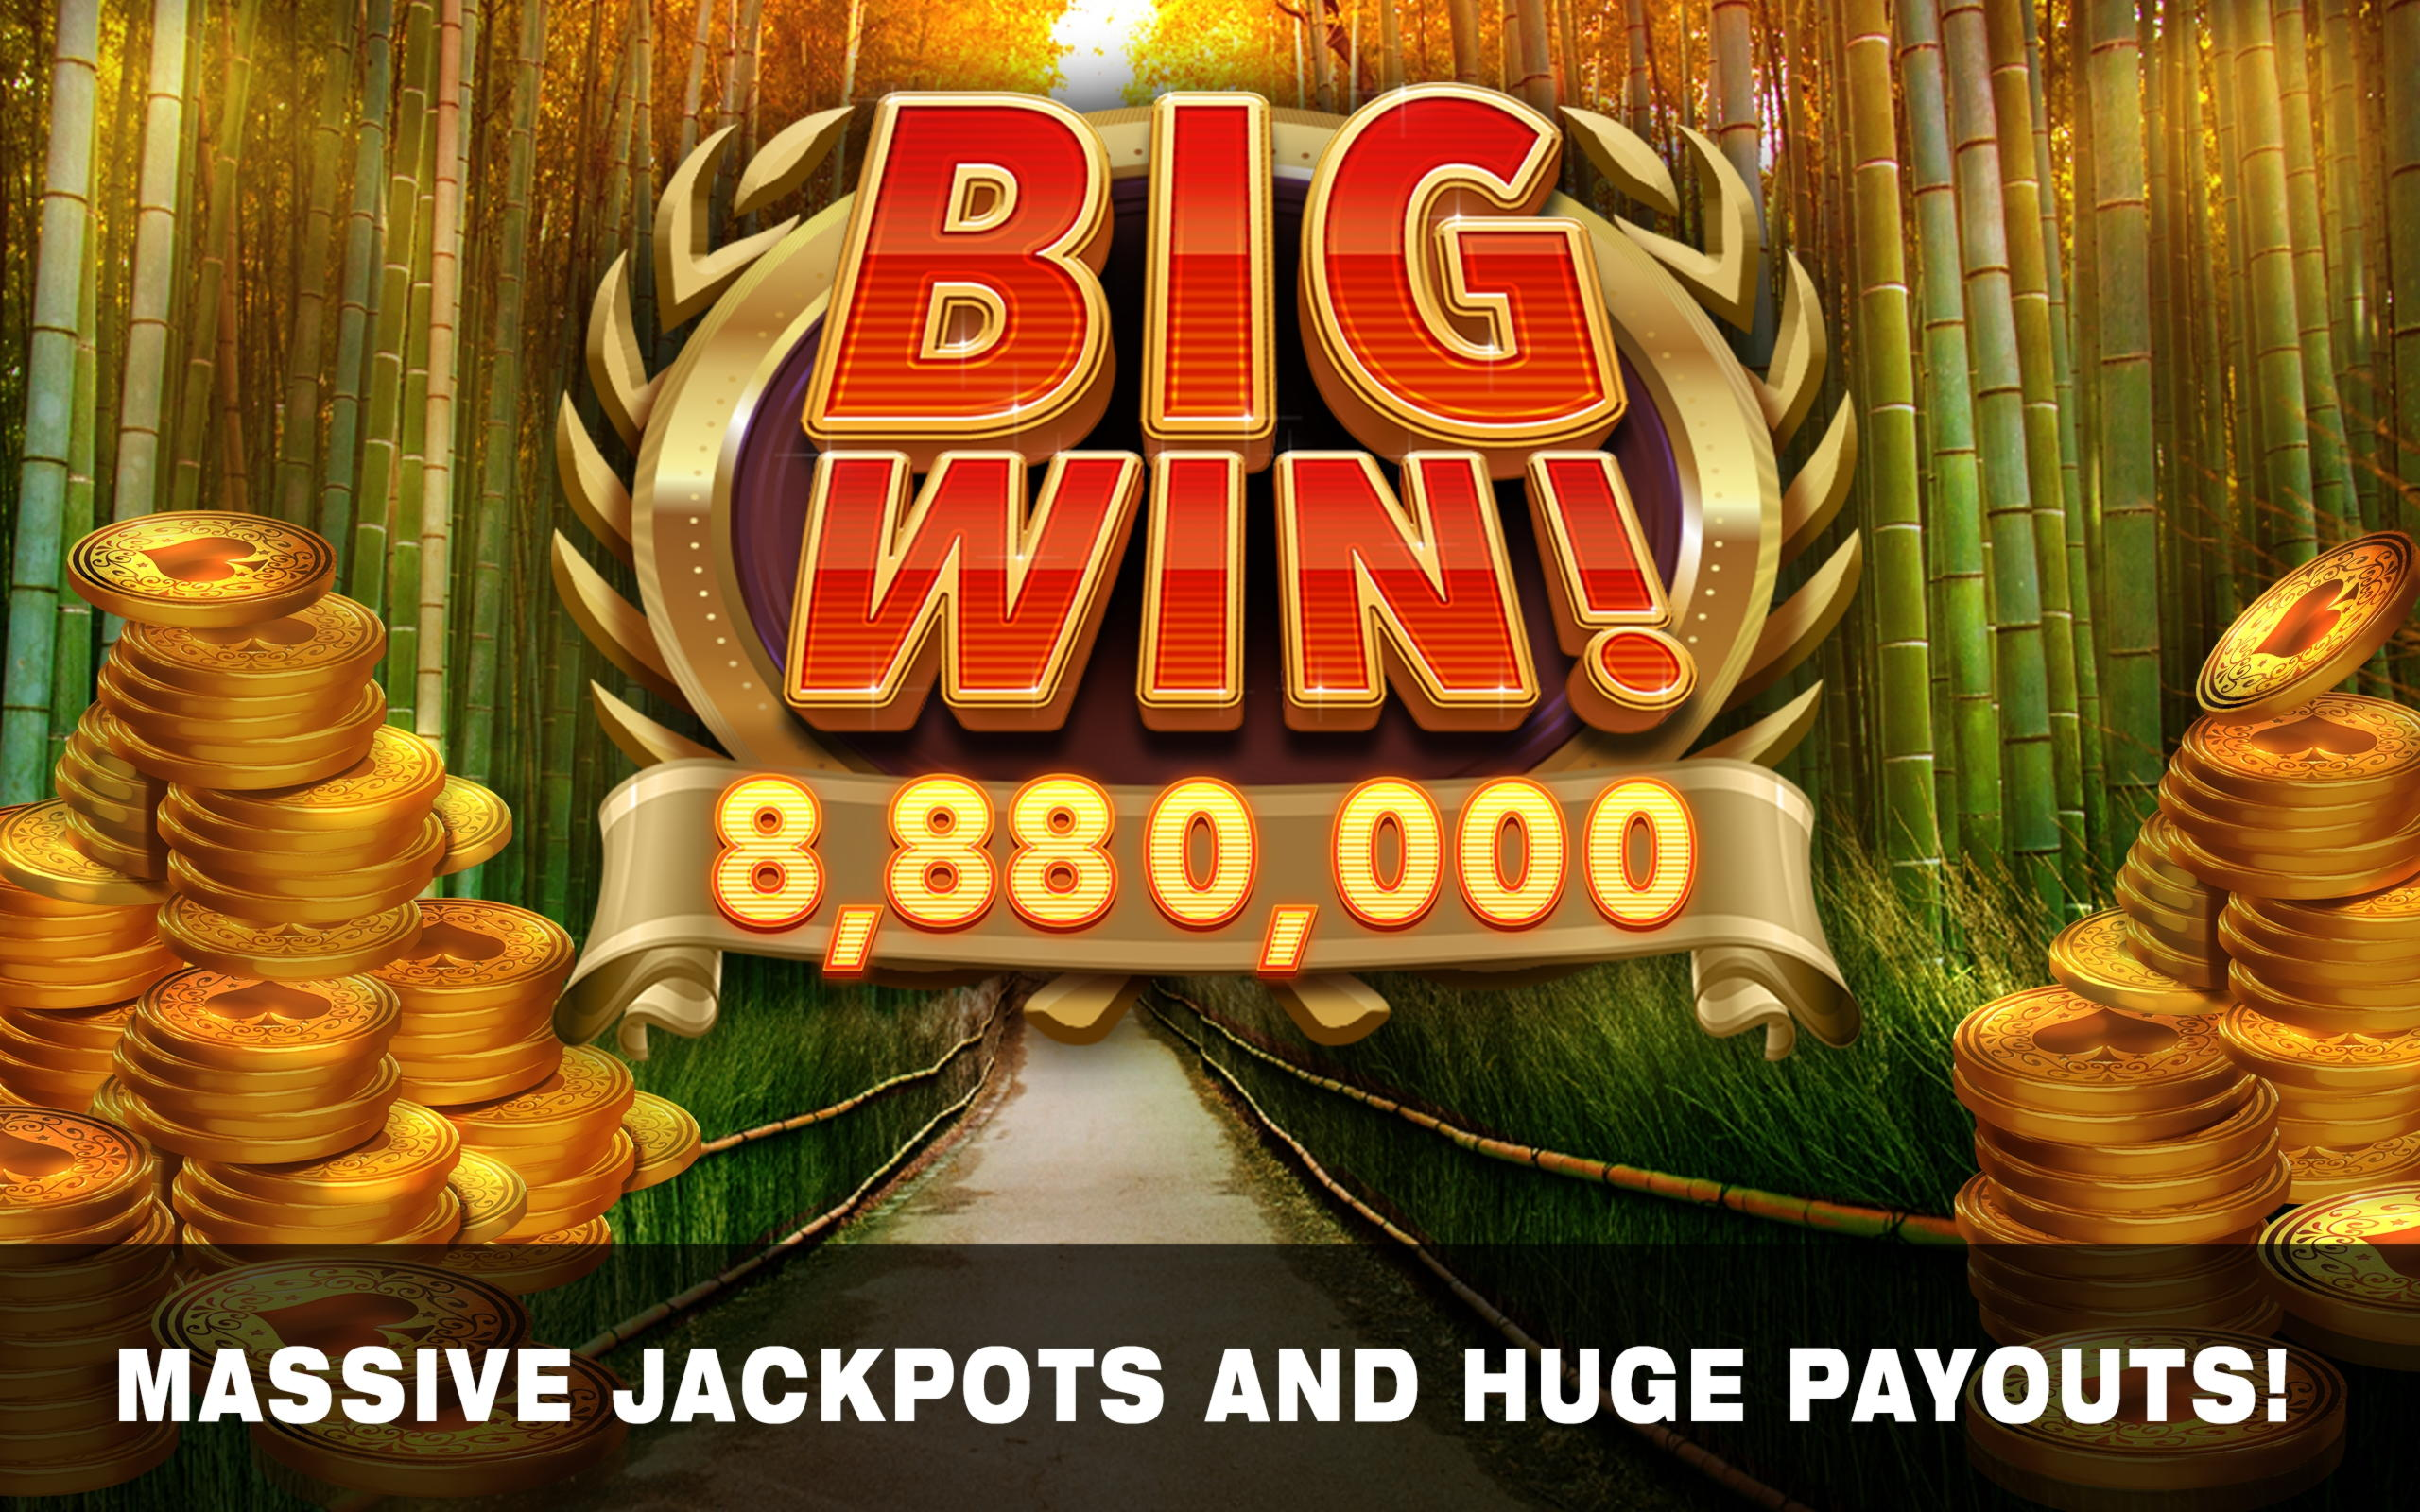 EURO 435 FREE Casino Chip at Touch Lucky